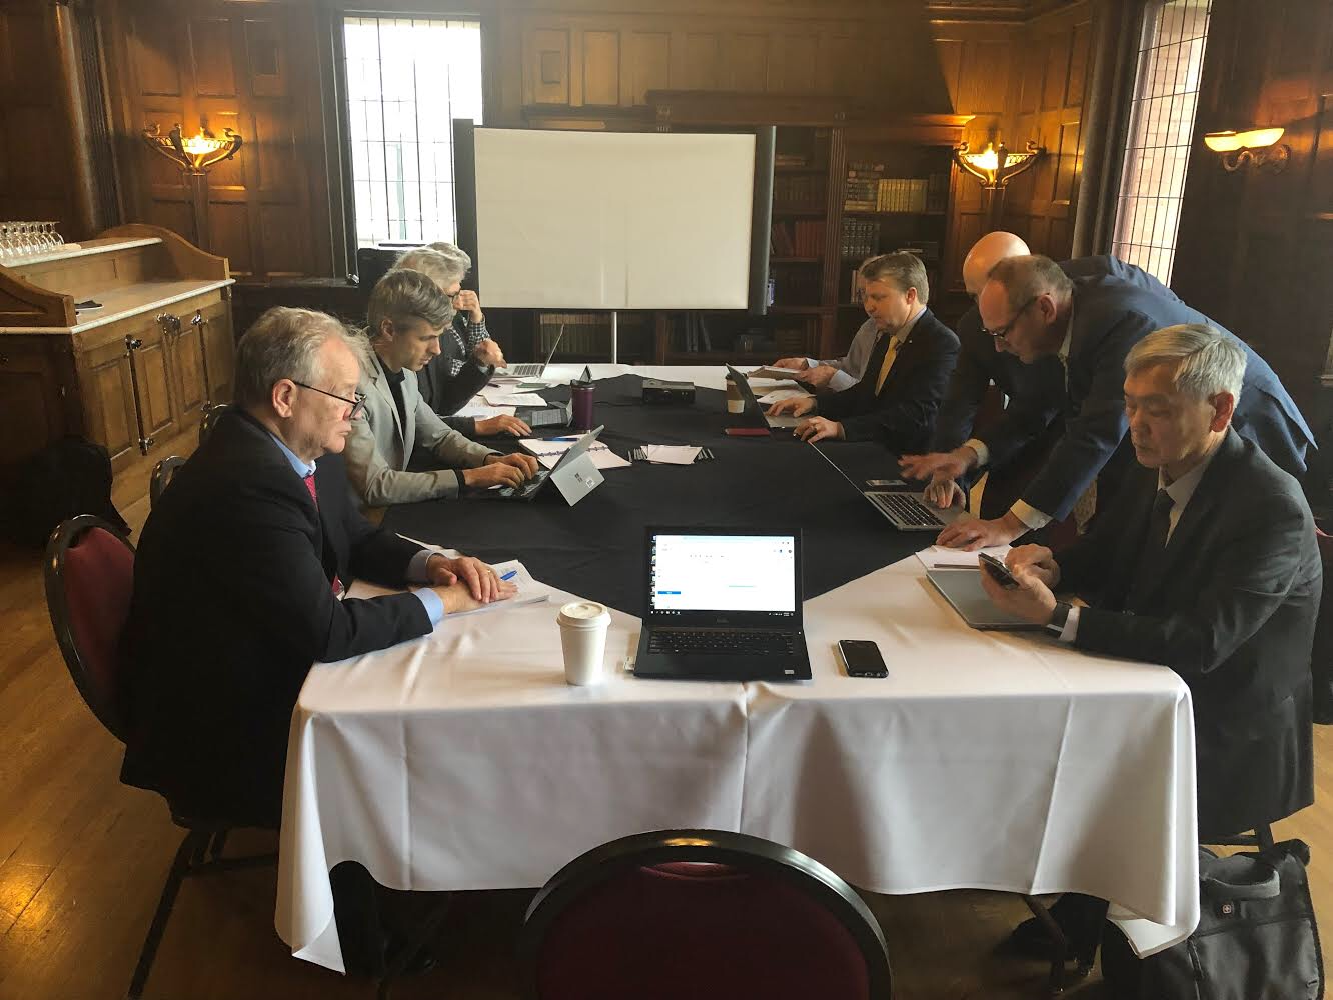 Senior U.S. IPHC Commissioner Robert Alverson (L) leads the important effort at securing a negotiated agreement with Canada over the 2019 Pacific Halibut Harvest limits and season duration.